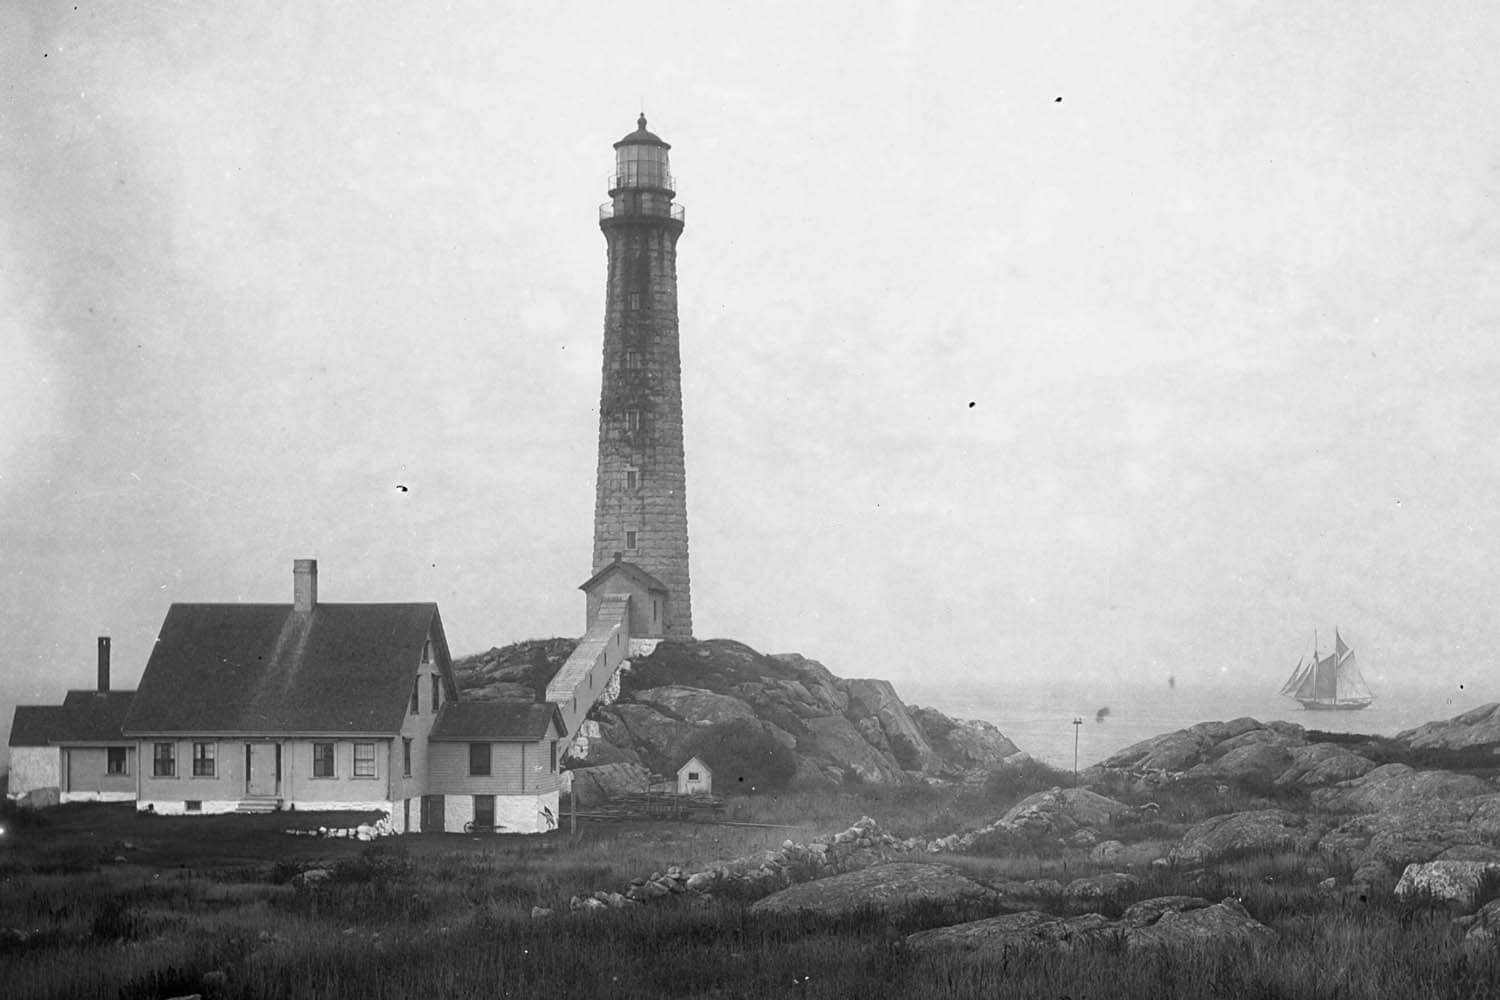 North tower with fishing schooner passing c.1910.